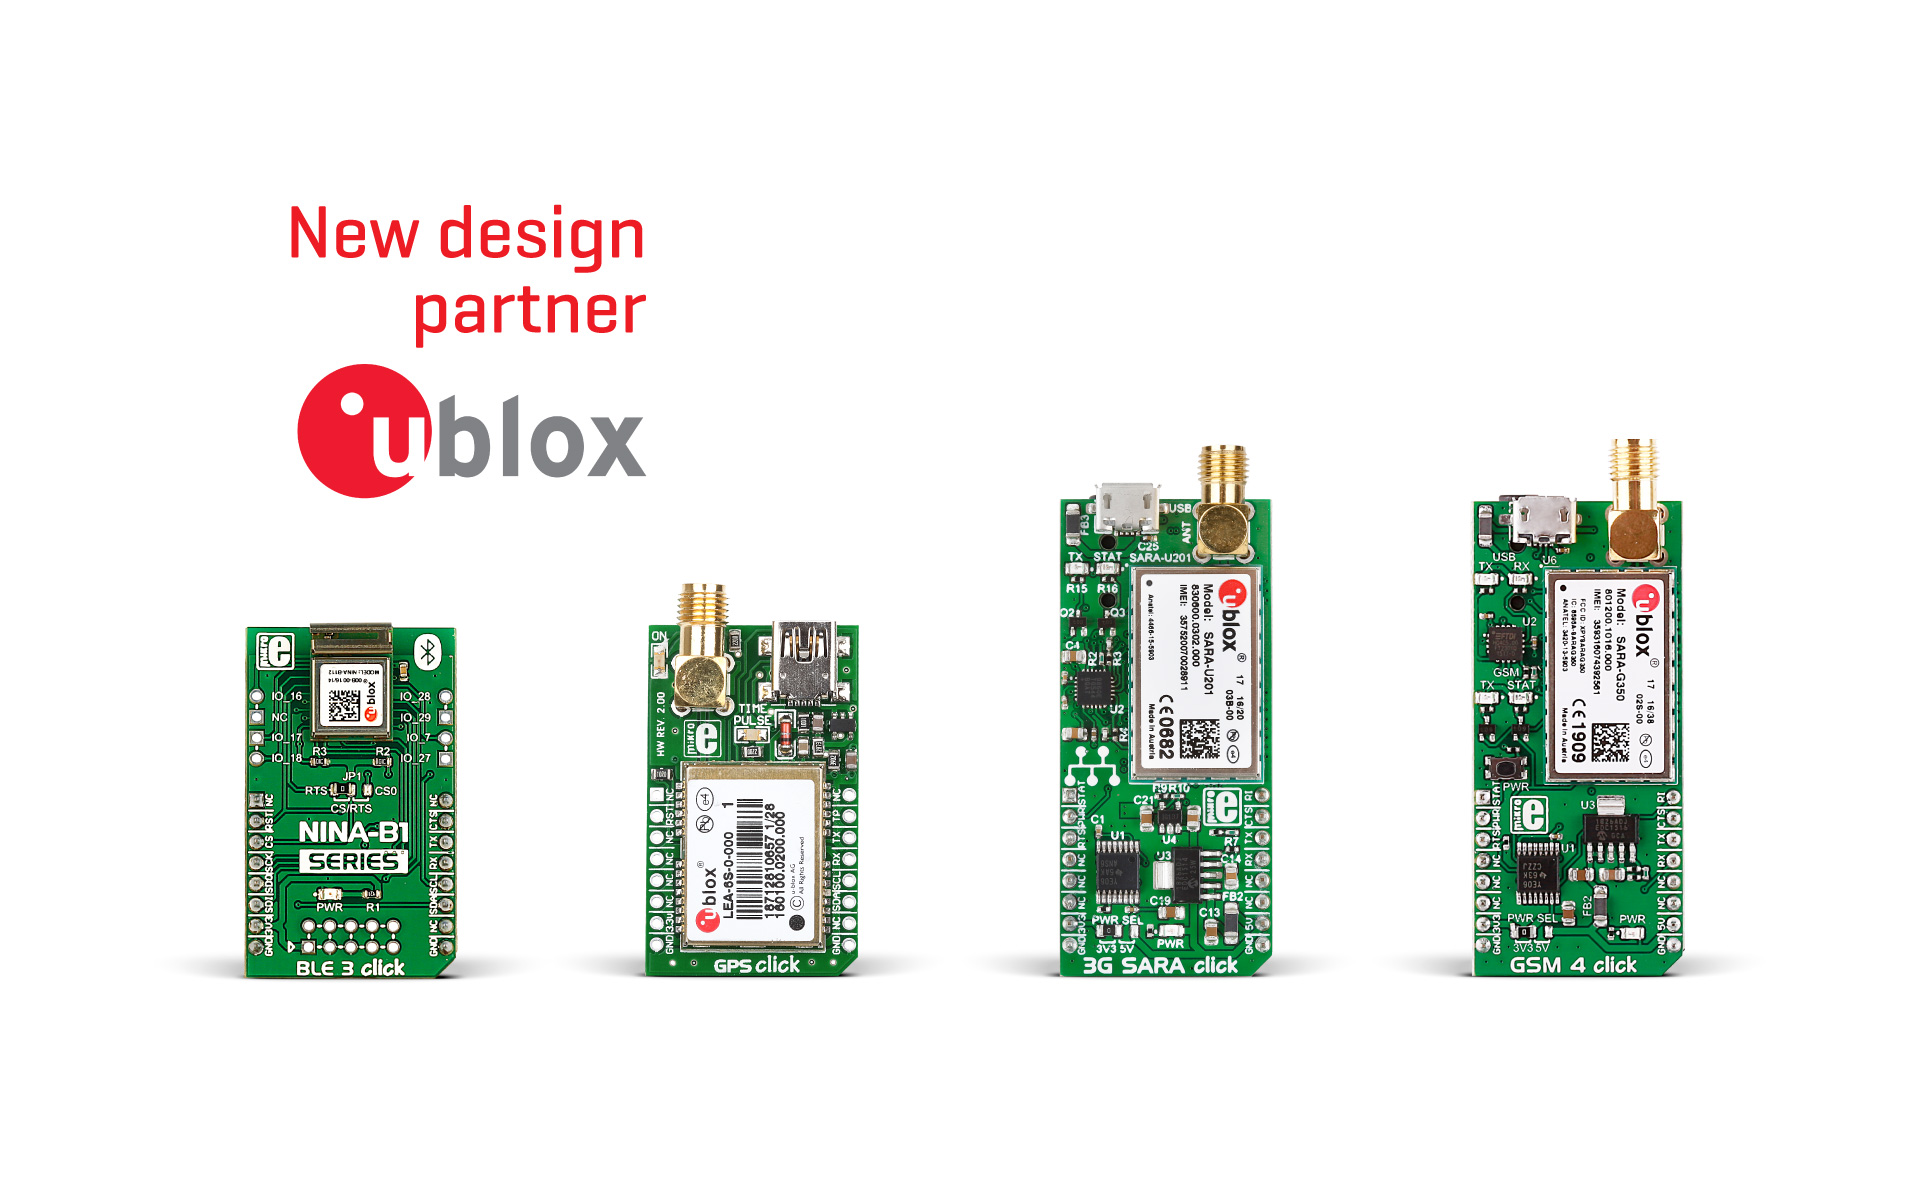 u-blox is our new design partner